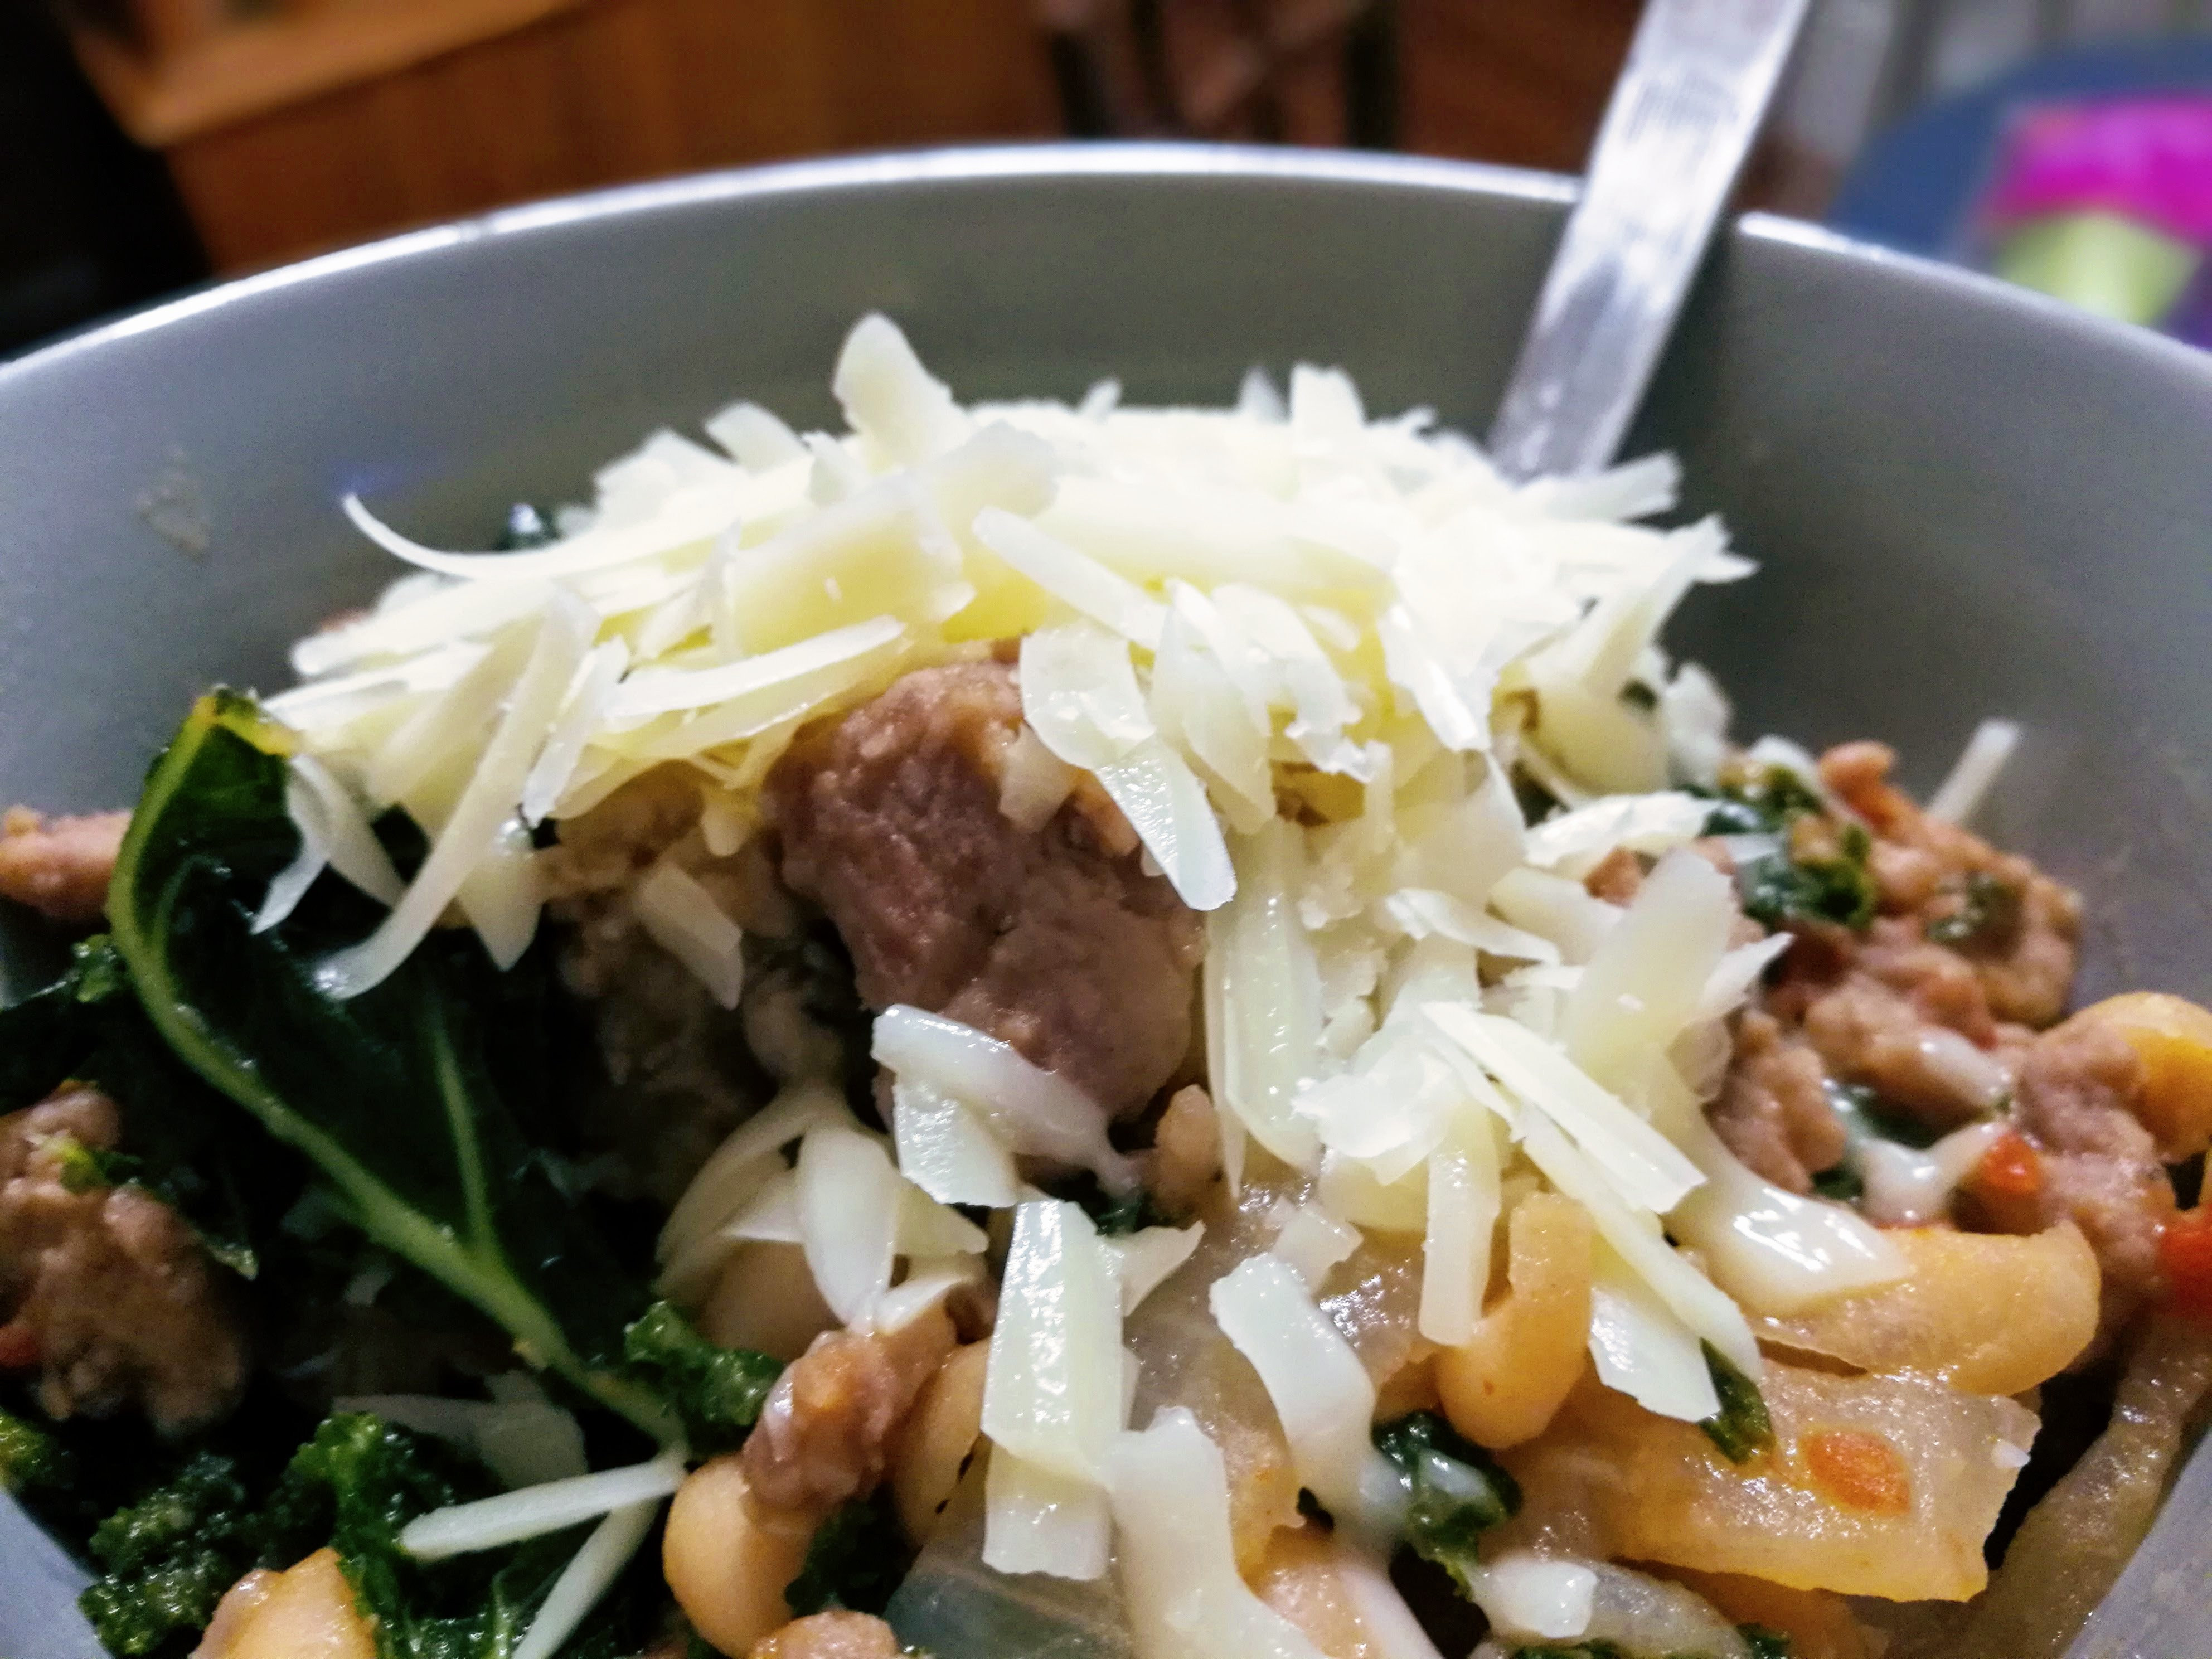 Sausage with Kale & Beans